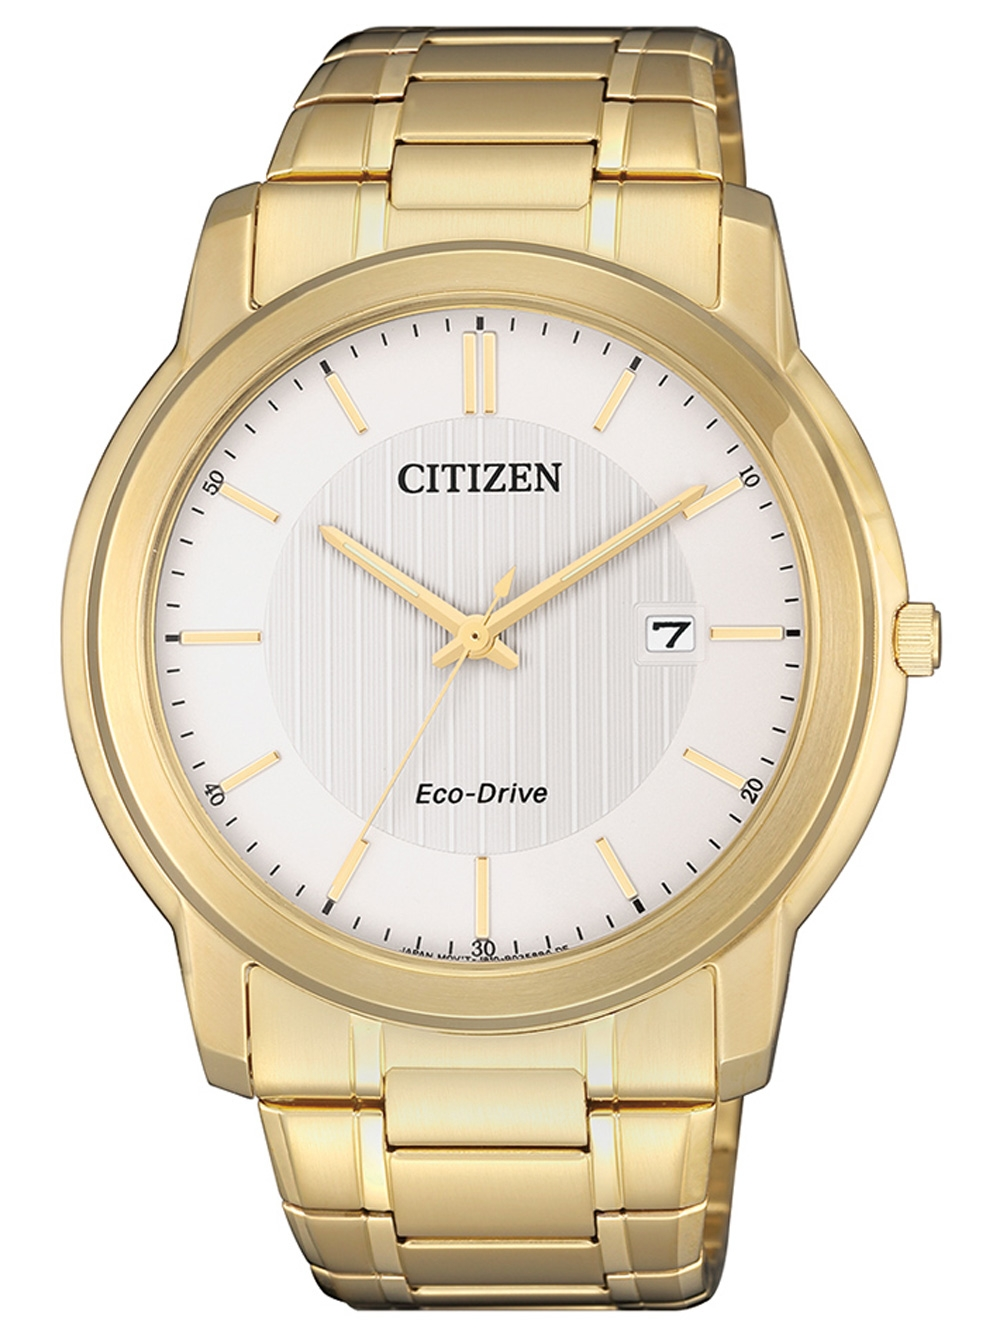 AW1212-87A Eco-Drive Sports Herren 41MM 5atm